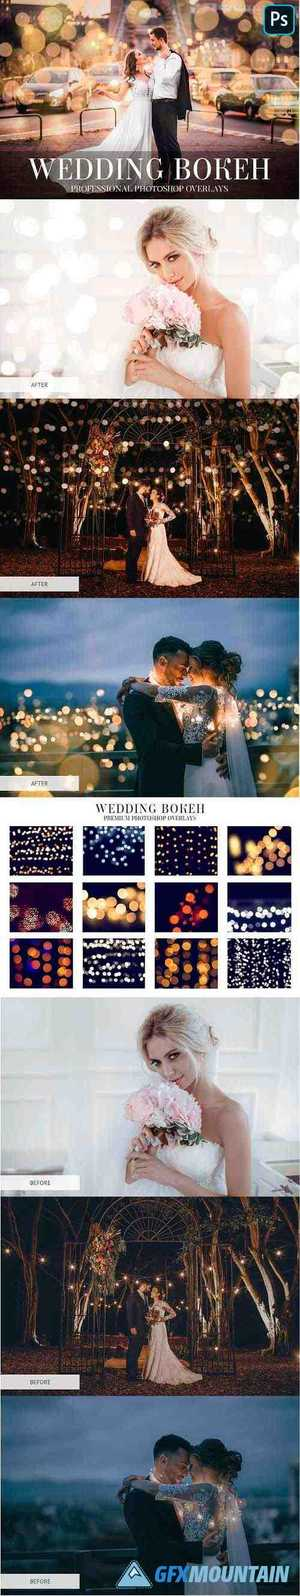 Wedding Bokeh Overlays 4934941